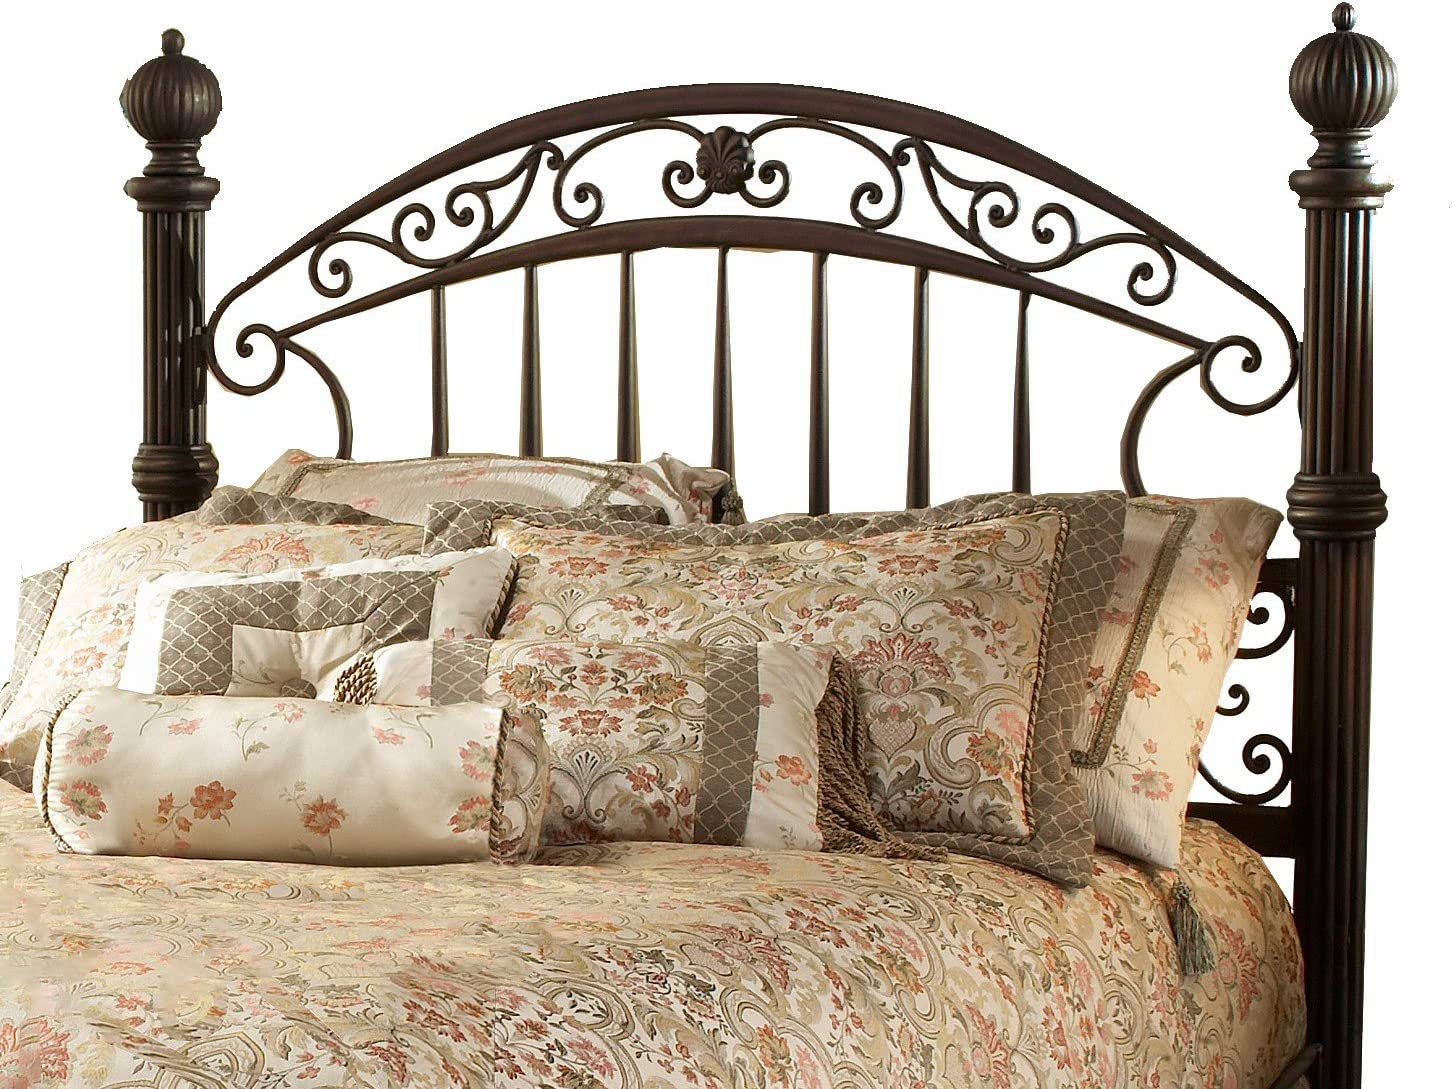 Hillsdale Furniture Chesapeake Headboard, Queen, Rustic Old Brown